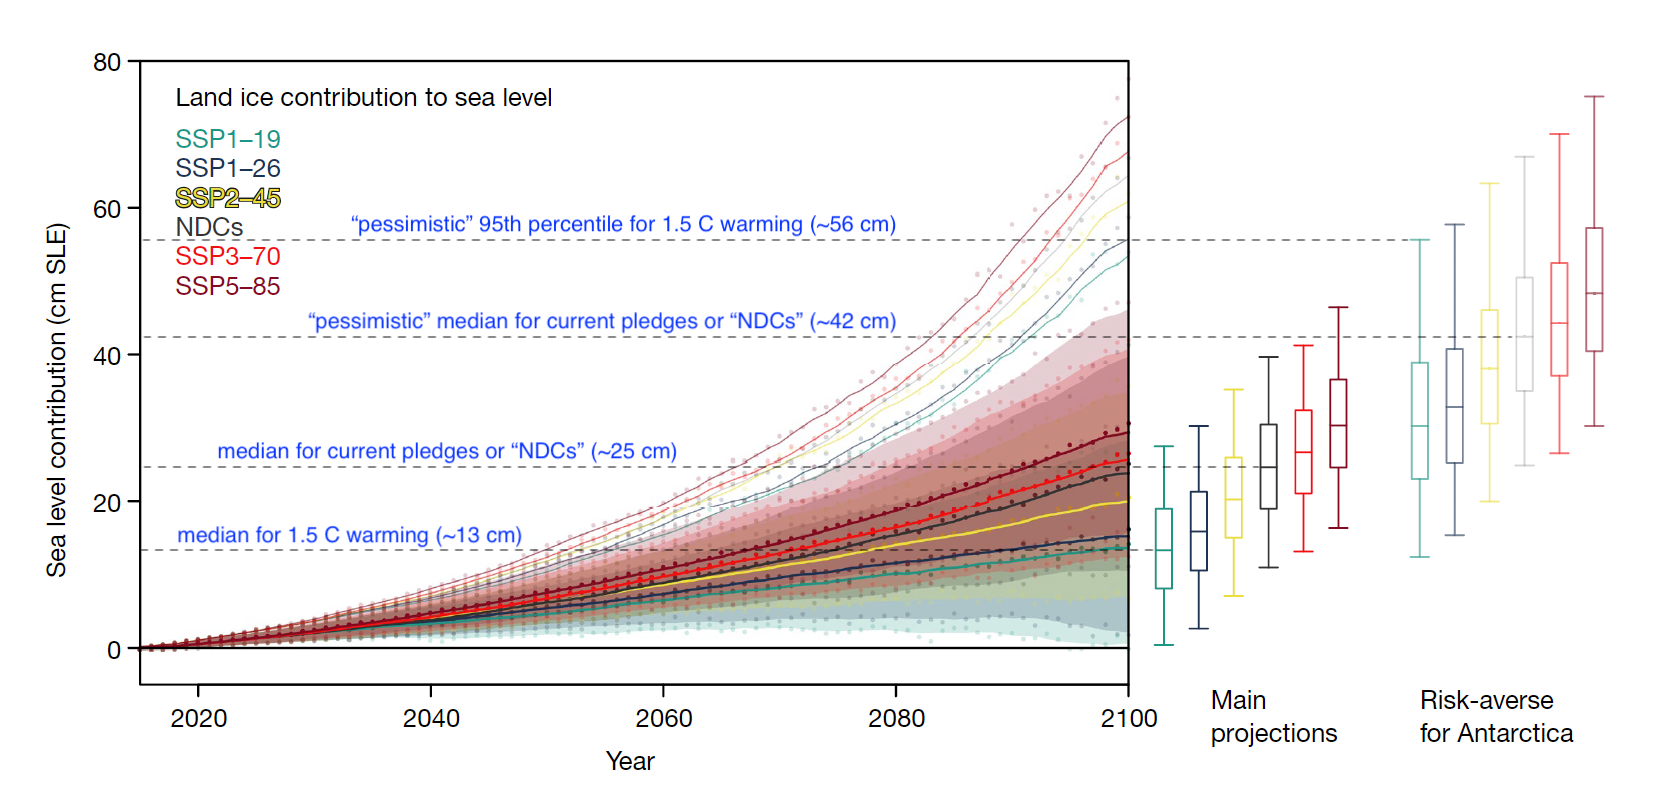 Projected 2015-2100 land ice contribution to sea level, in centimeters (cm) of sea level equivalent (SLE), for a range of emissions scenarios.